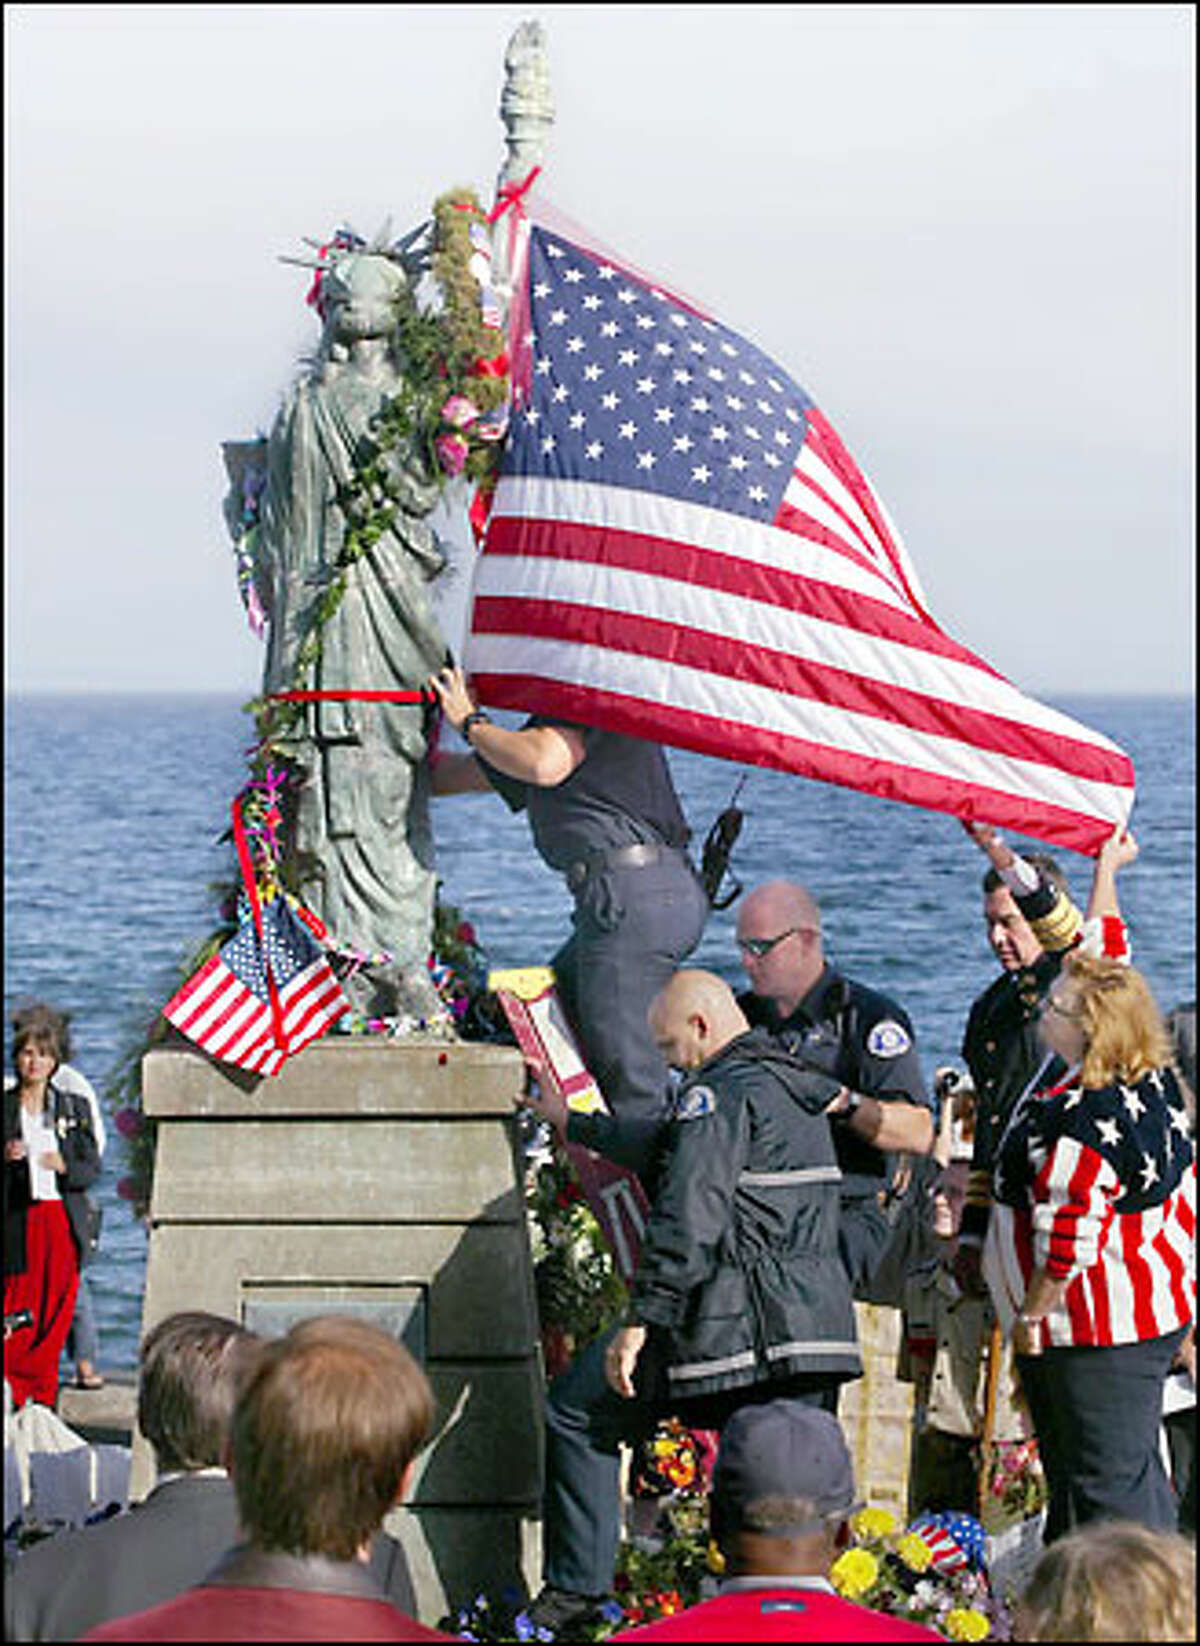 Cindi Laws, bottom right, returned to Alki, where she sought solace last Sept. 11, to place an American flag on the Statue of Liberty. Assisting were Seattle police Chief Gil Kerlikowske, behind her, Seattle firefighters Jason De Bruler, top, Roland Falb, in glasses, and L.T. Grant.